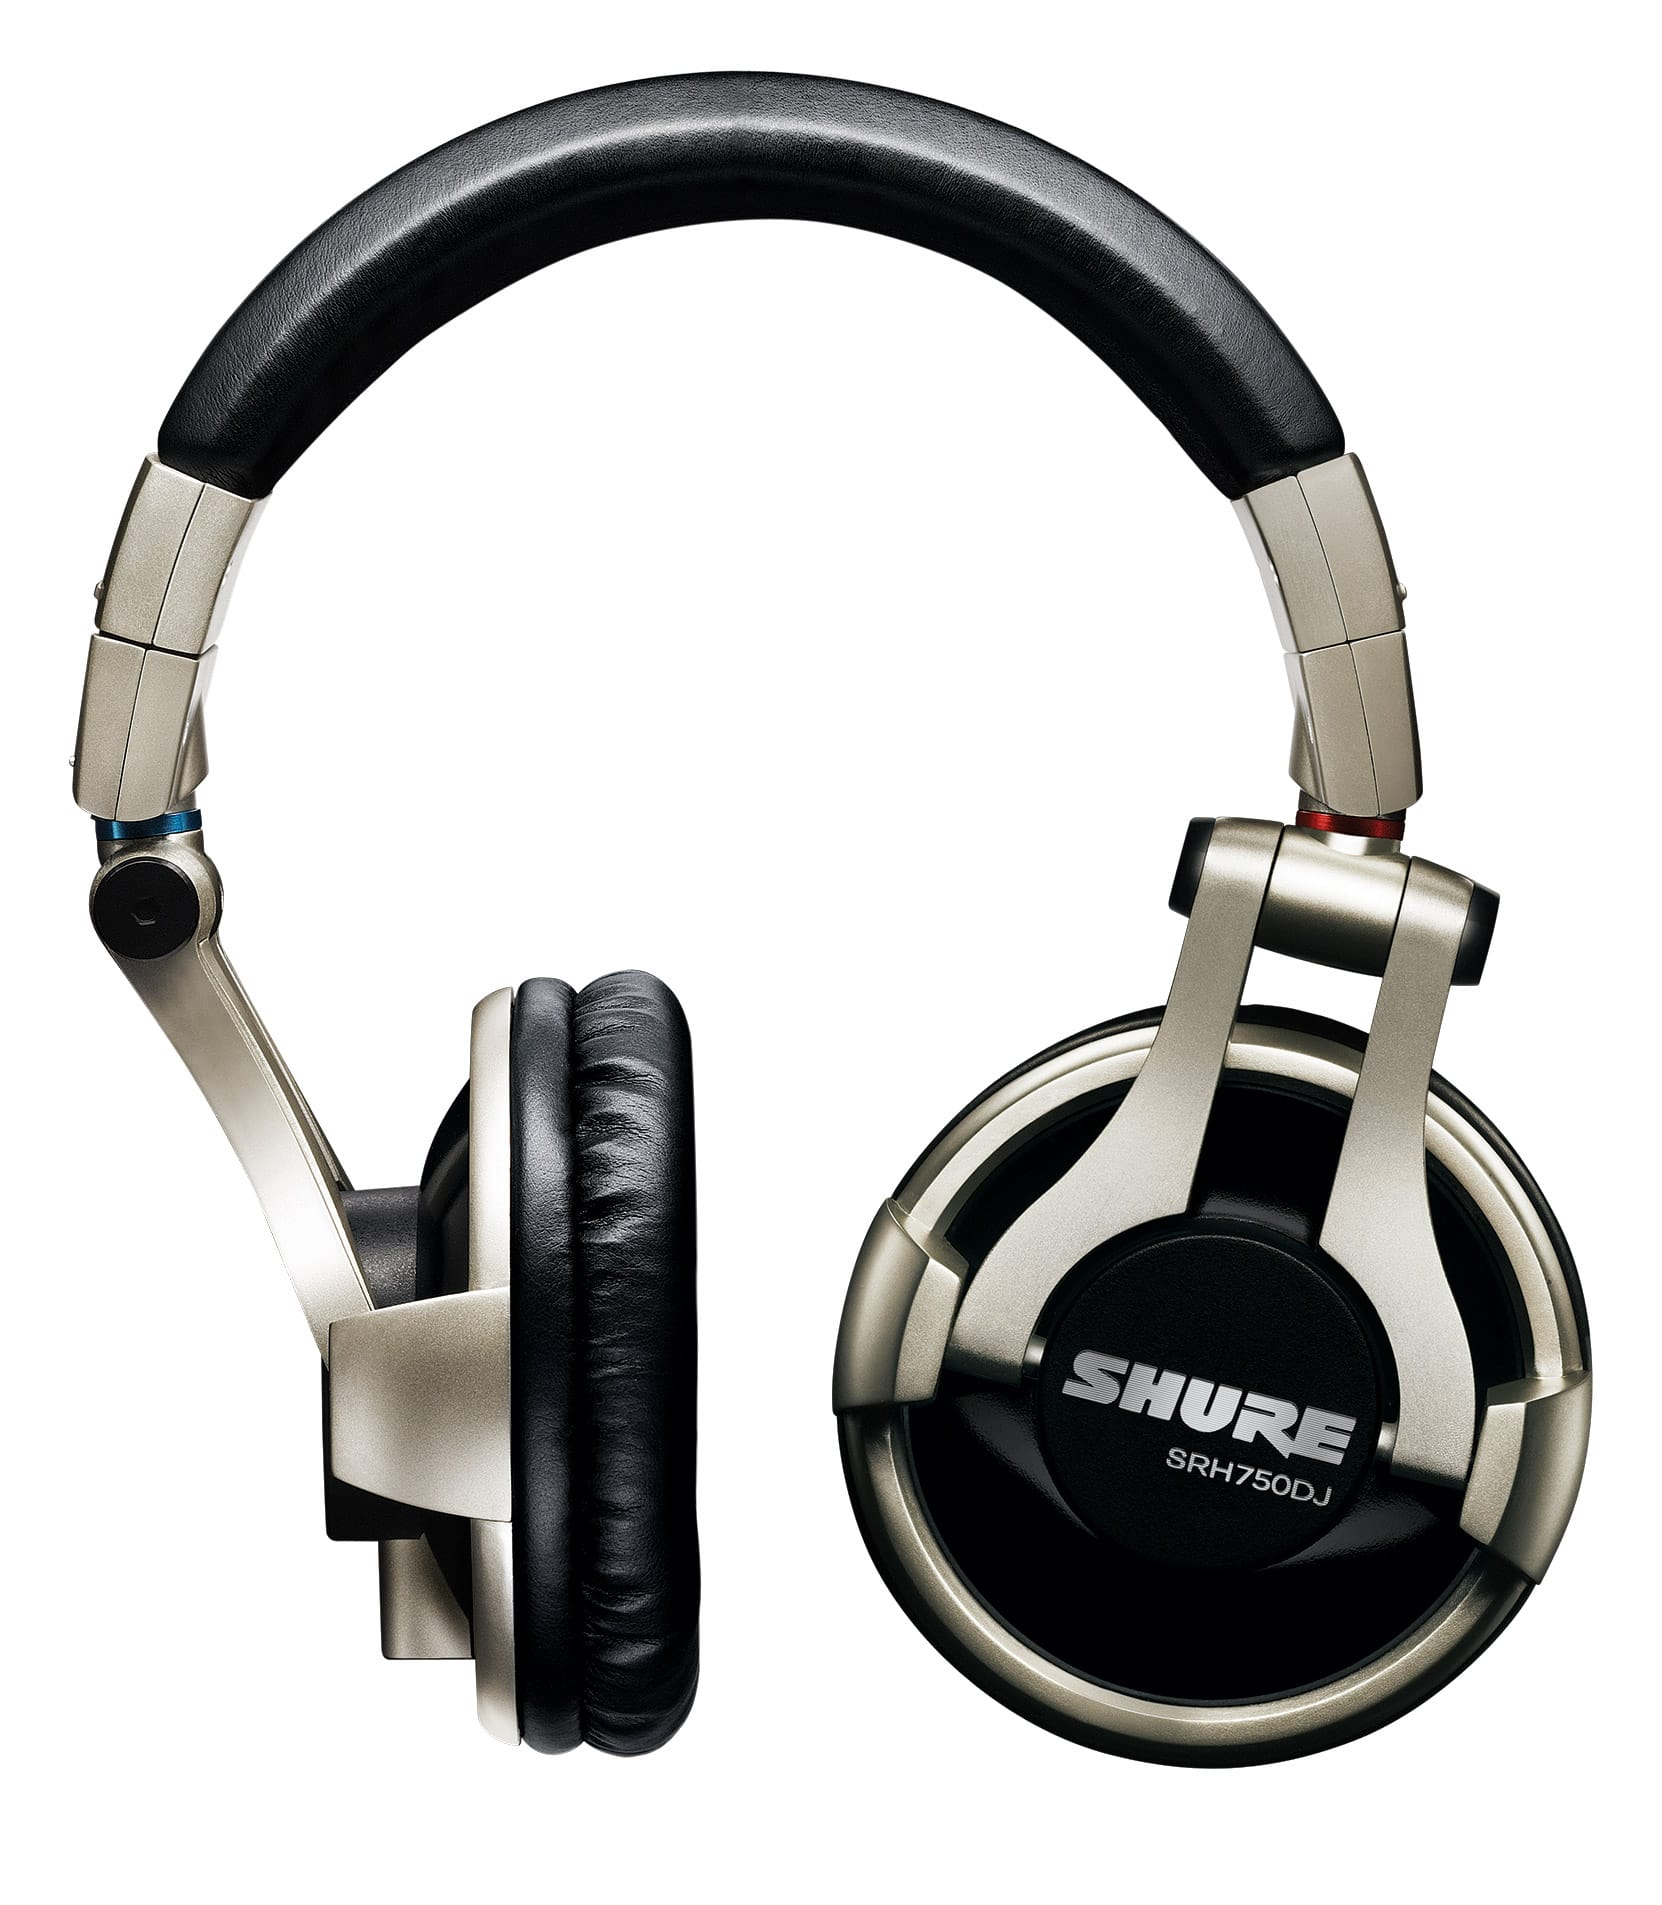 Buy shure SRH750DJ EProfessional DJ Headphones Melody House